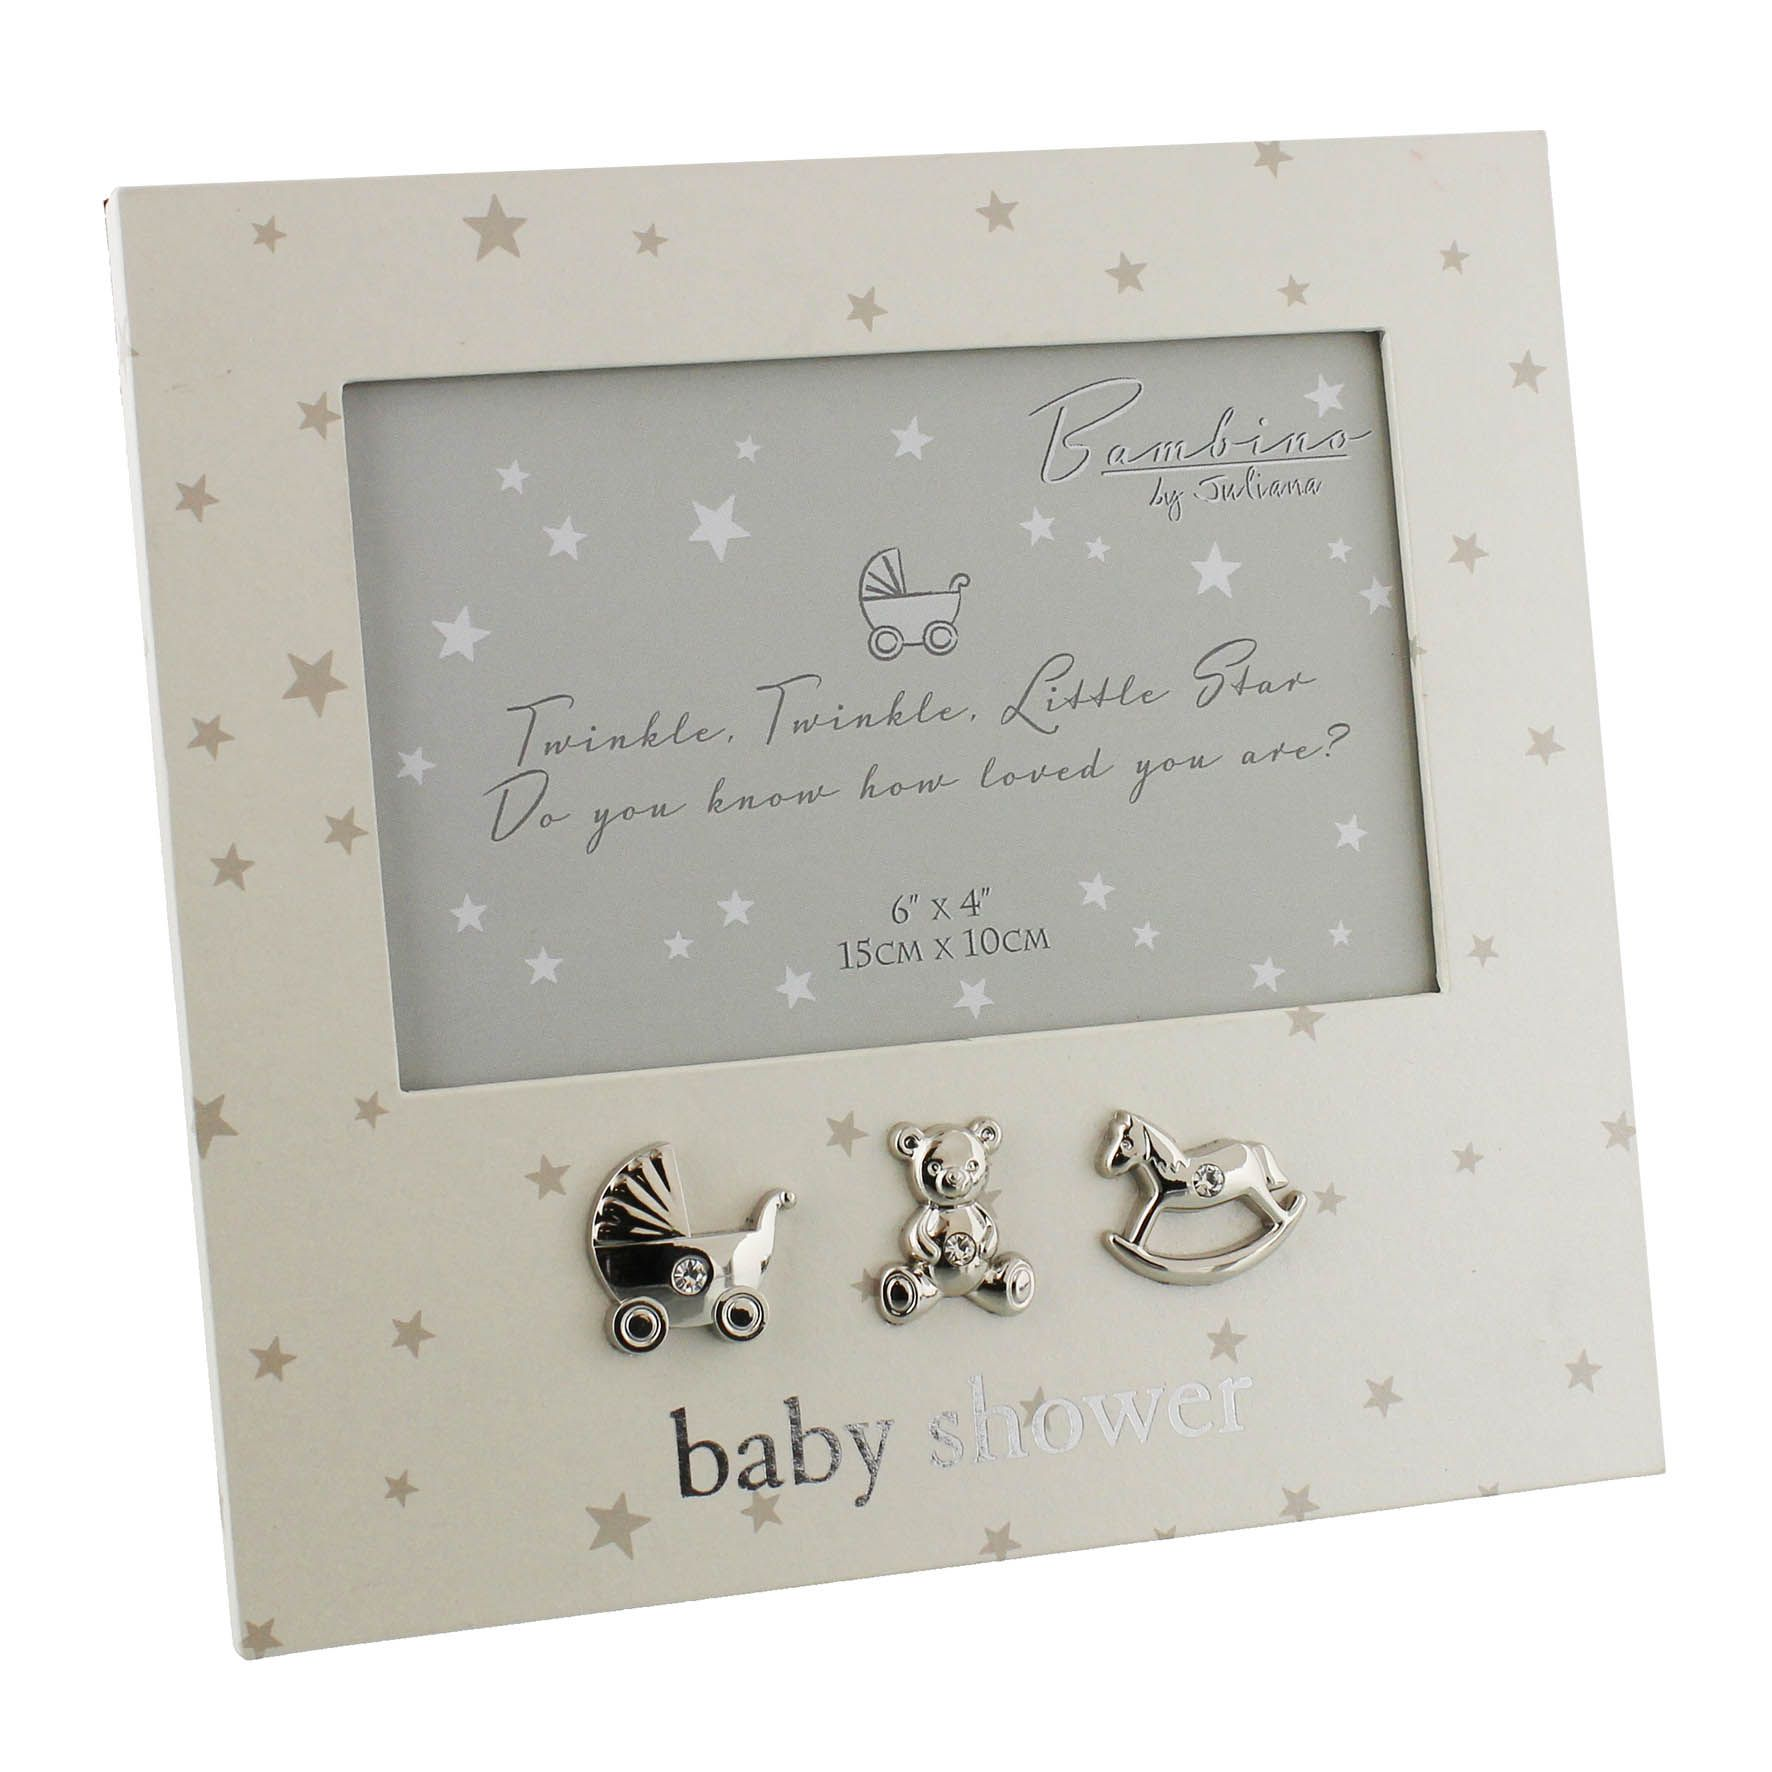 Bambino Bambino Paperwrap photoframe baby shower